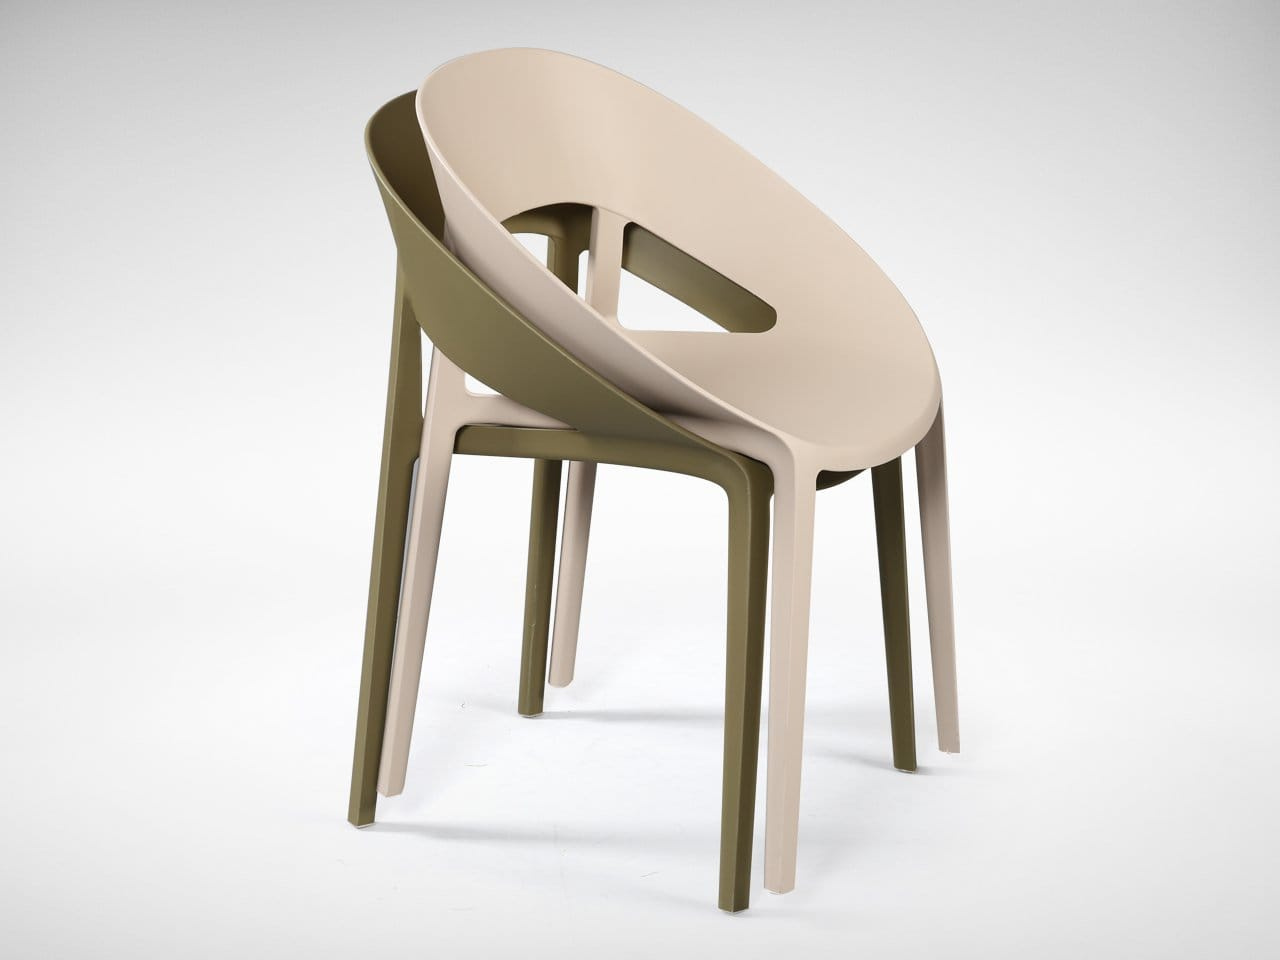 office chair in mumbai raz shower order form comfort design the and table people